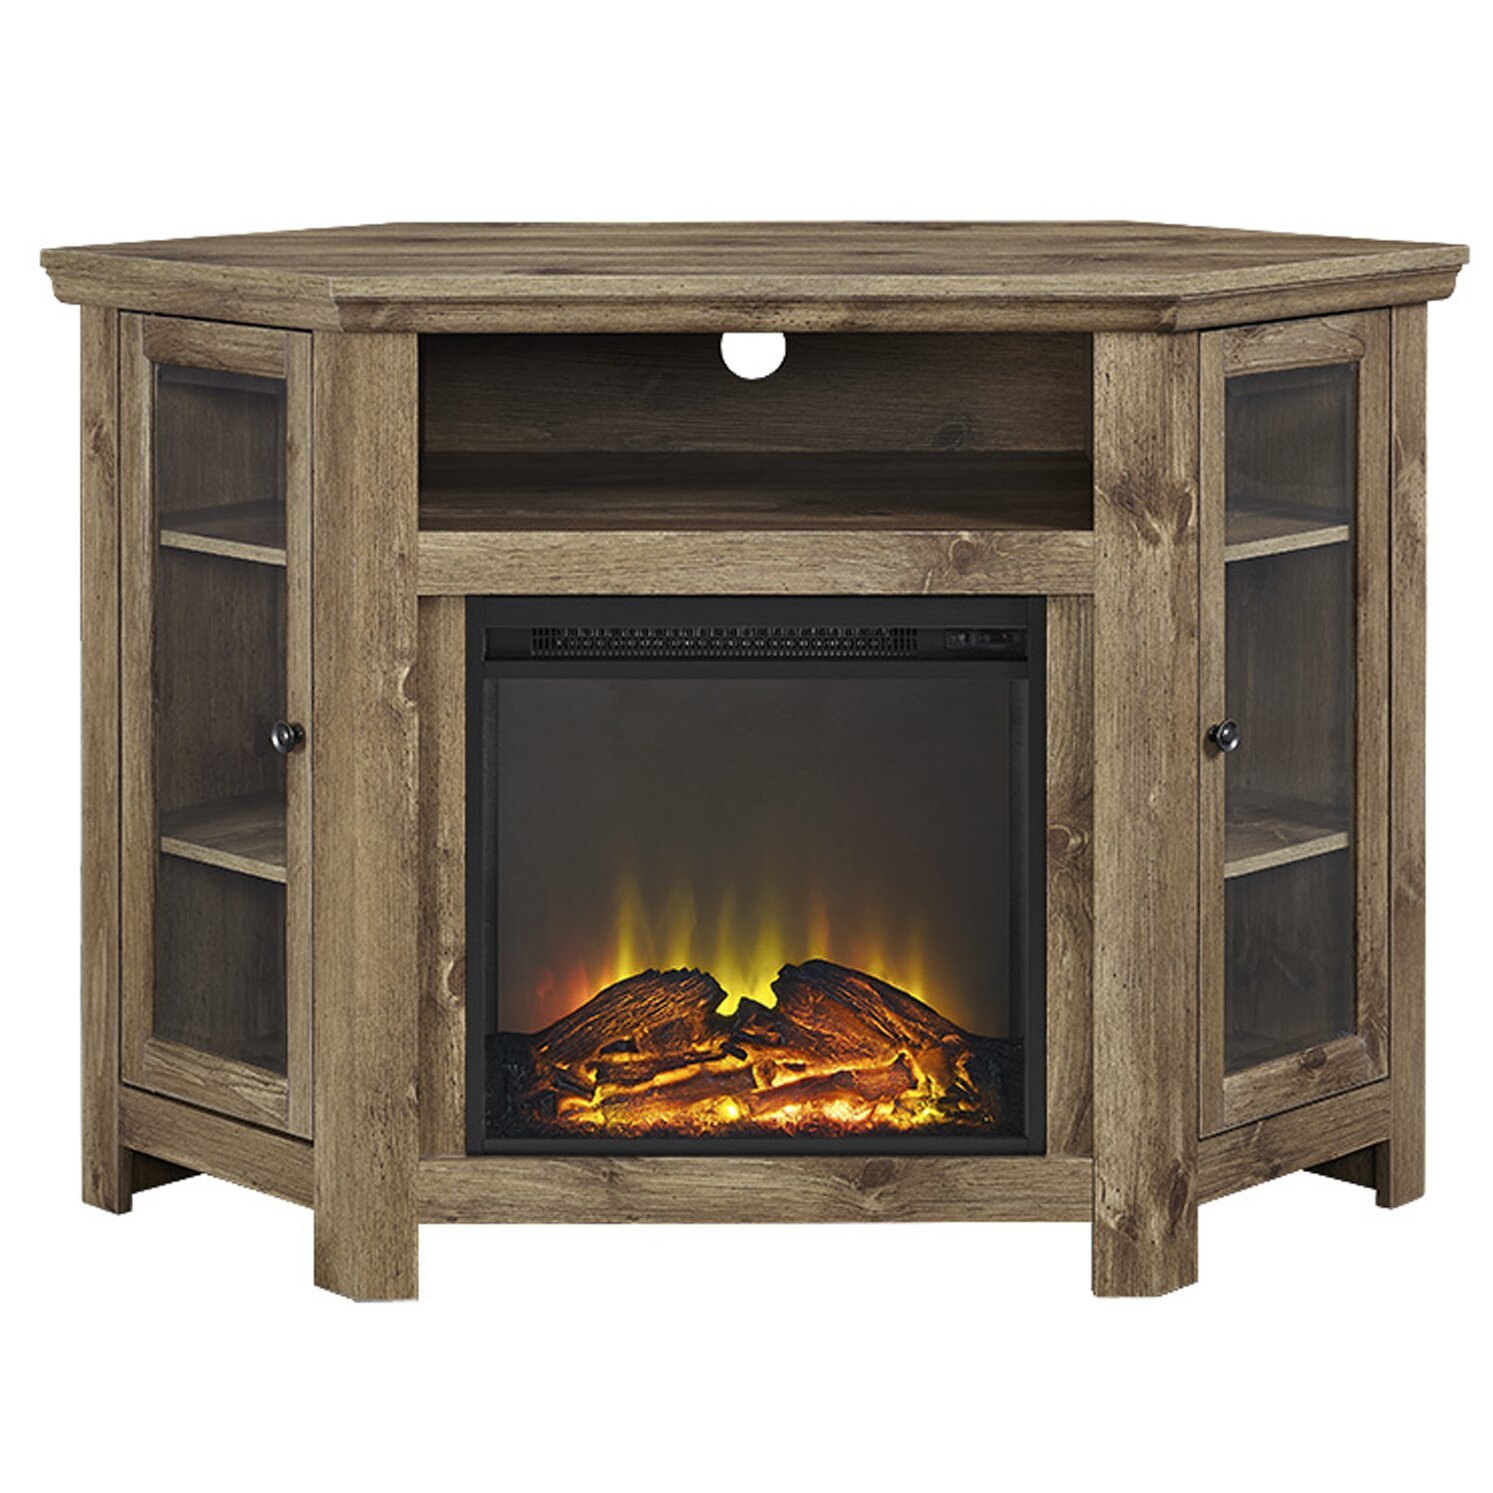 Union Rustic Rena Corner Tv Stand With Electric Fireplace